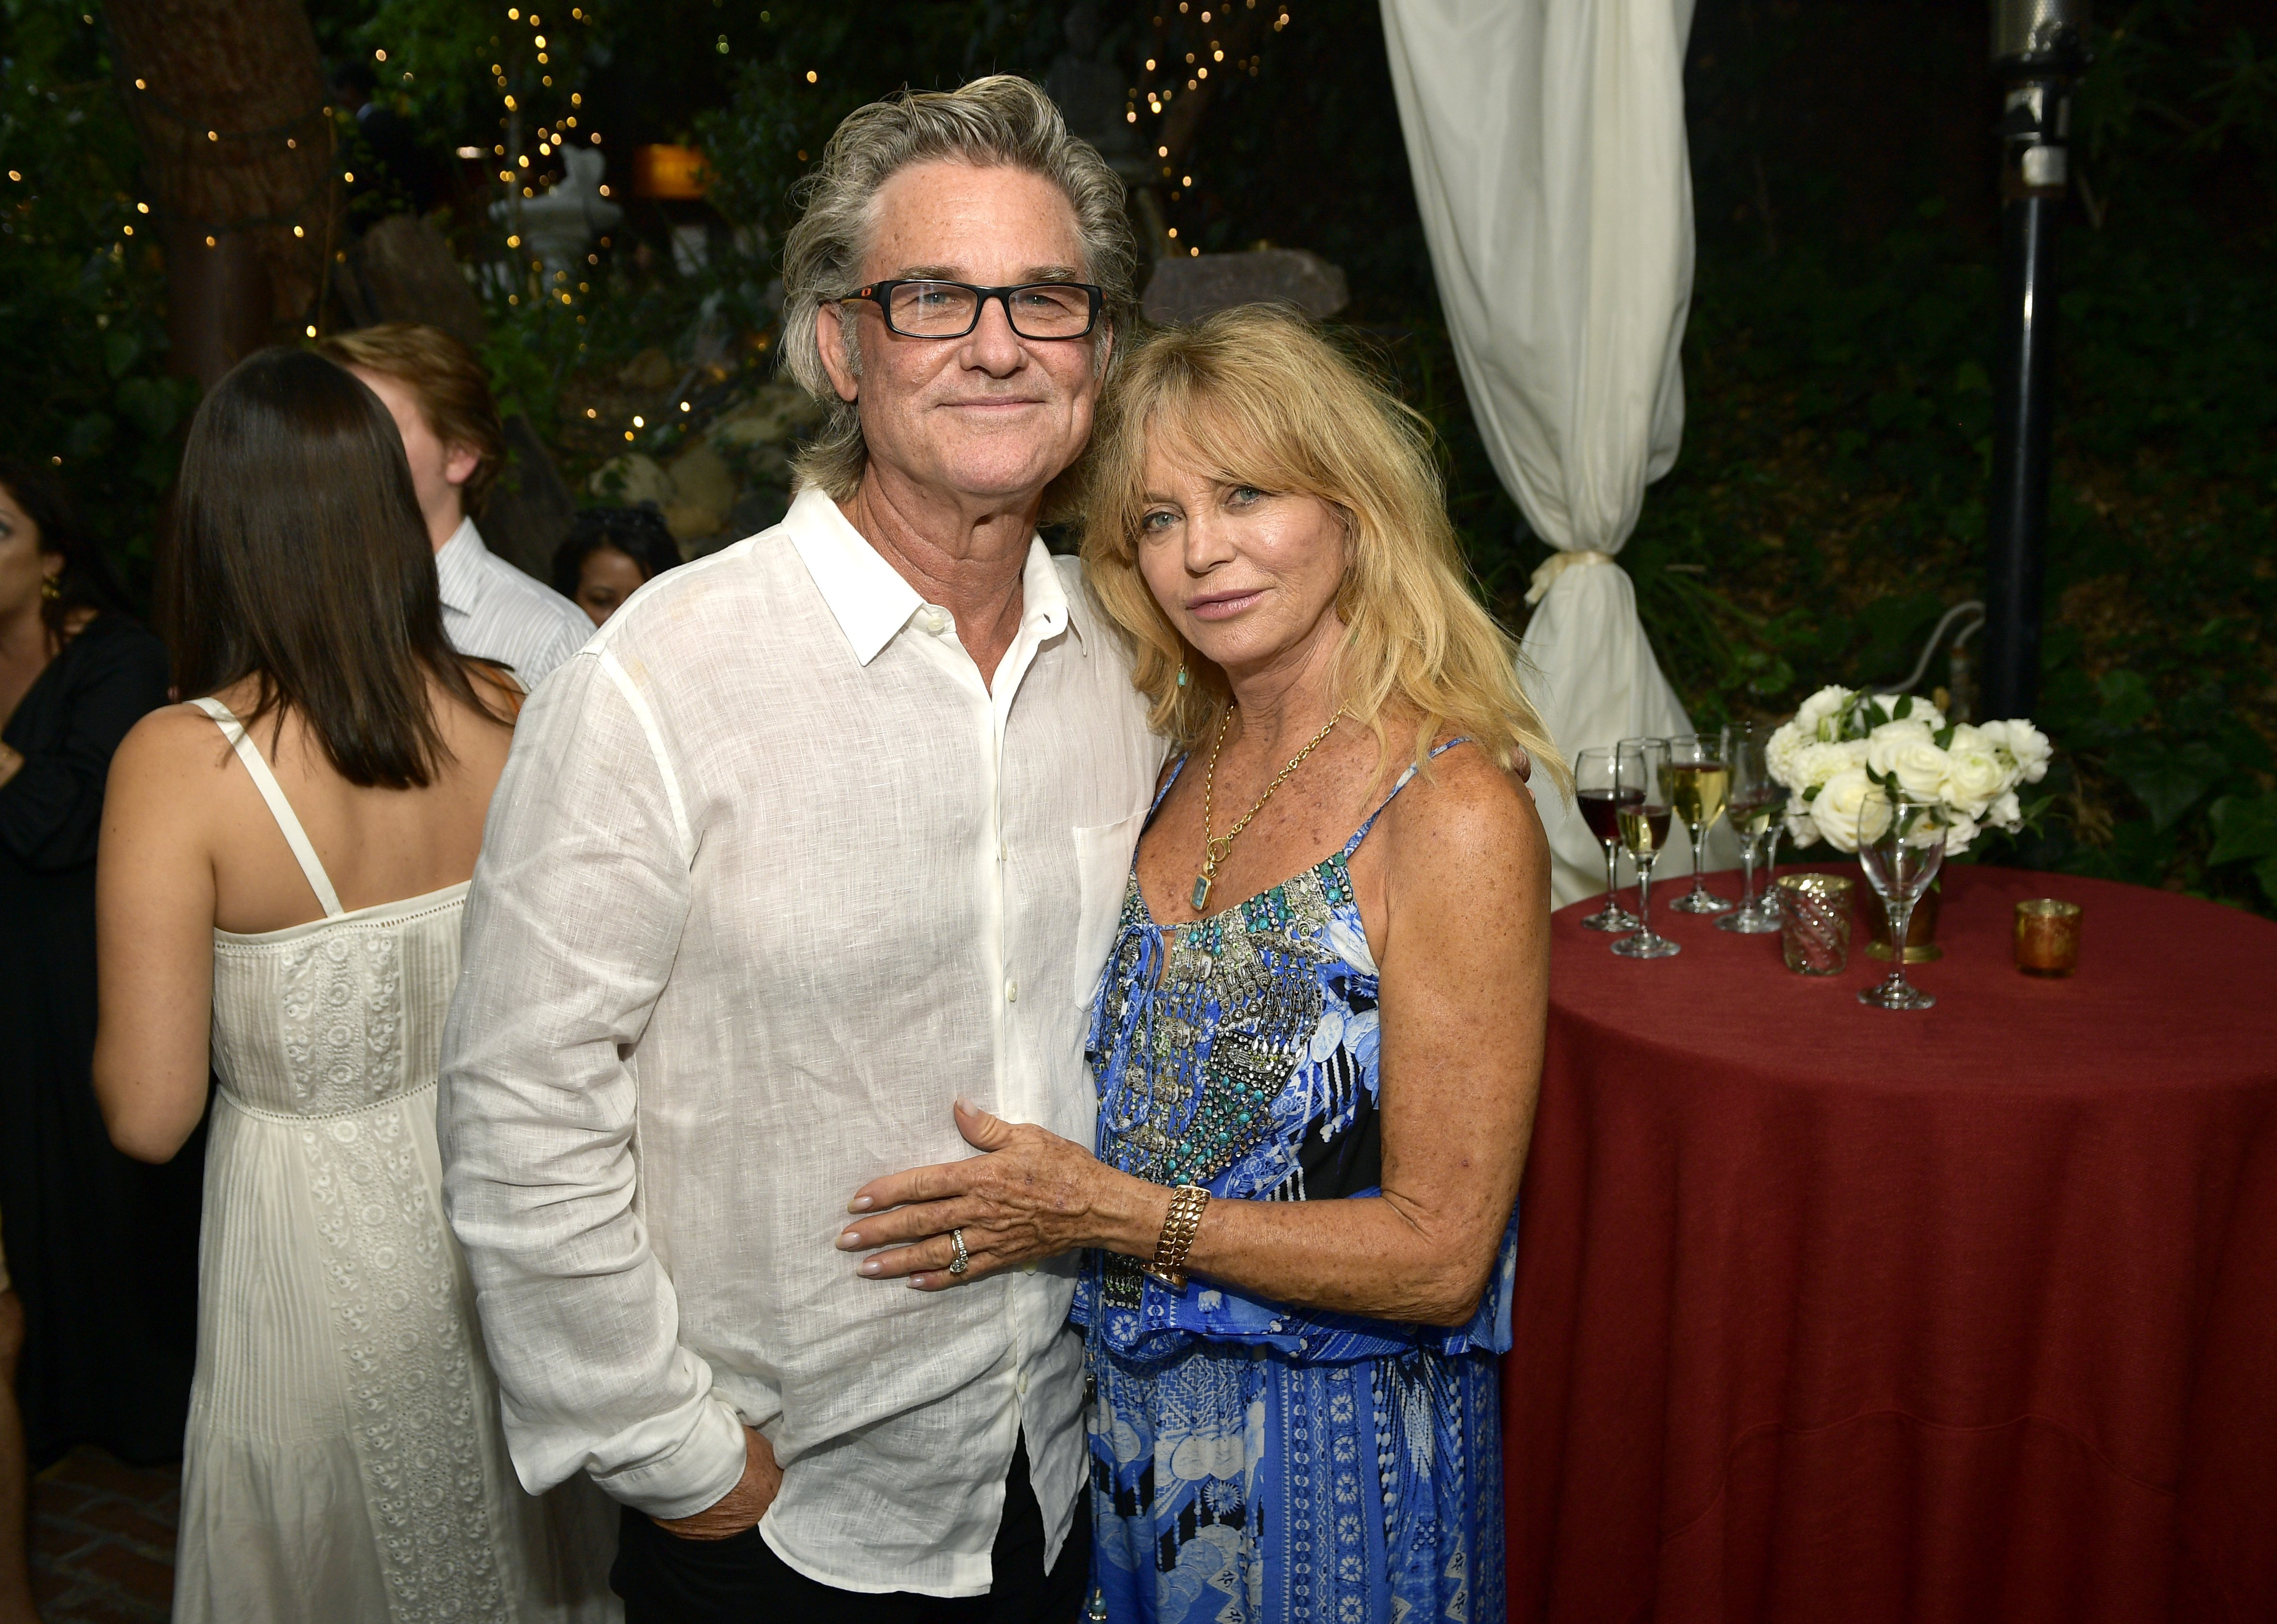 """Kurt Russell and Goldie Hawn attend the """"Wild Wild Country"""" Filmmaker Toast in Topanga, California on August 4, 2018 